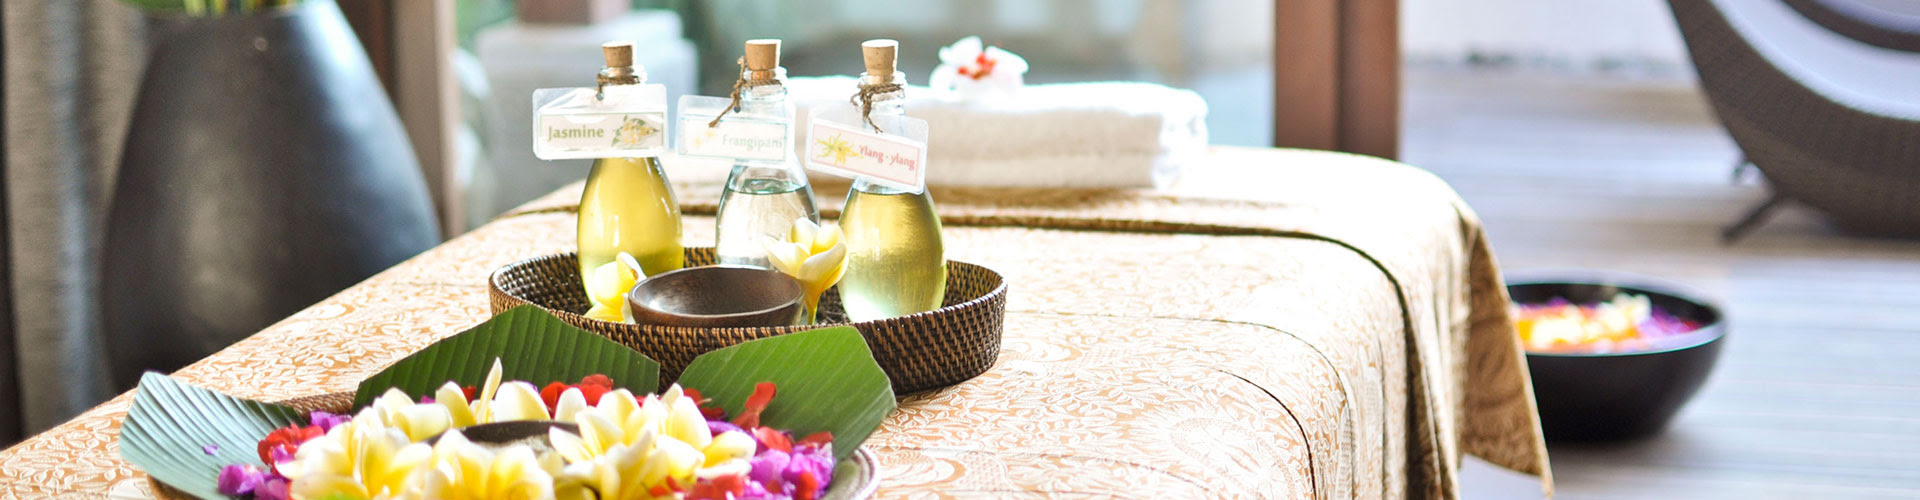 Luwak Spa Bali Map,Things to do in Bali Island,Luwak Spa Bali,Tourist Attractions in Bali,Luwak Spa Bali accommodation destinations attractions hotels map reviews photos pictures